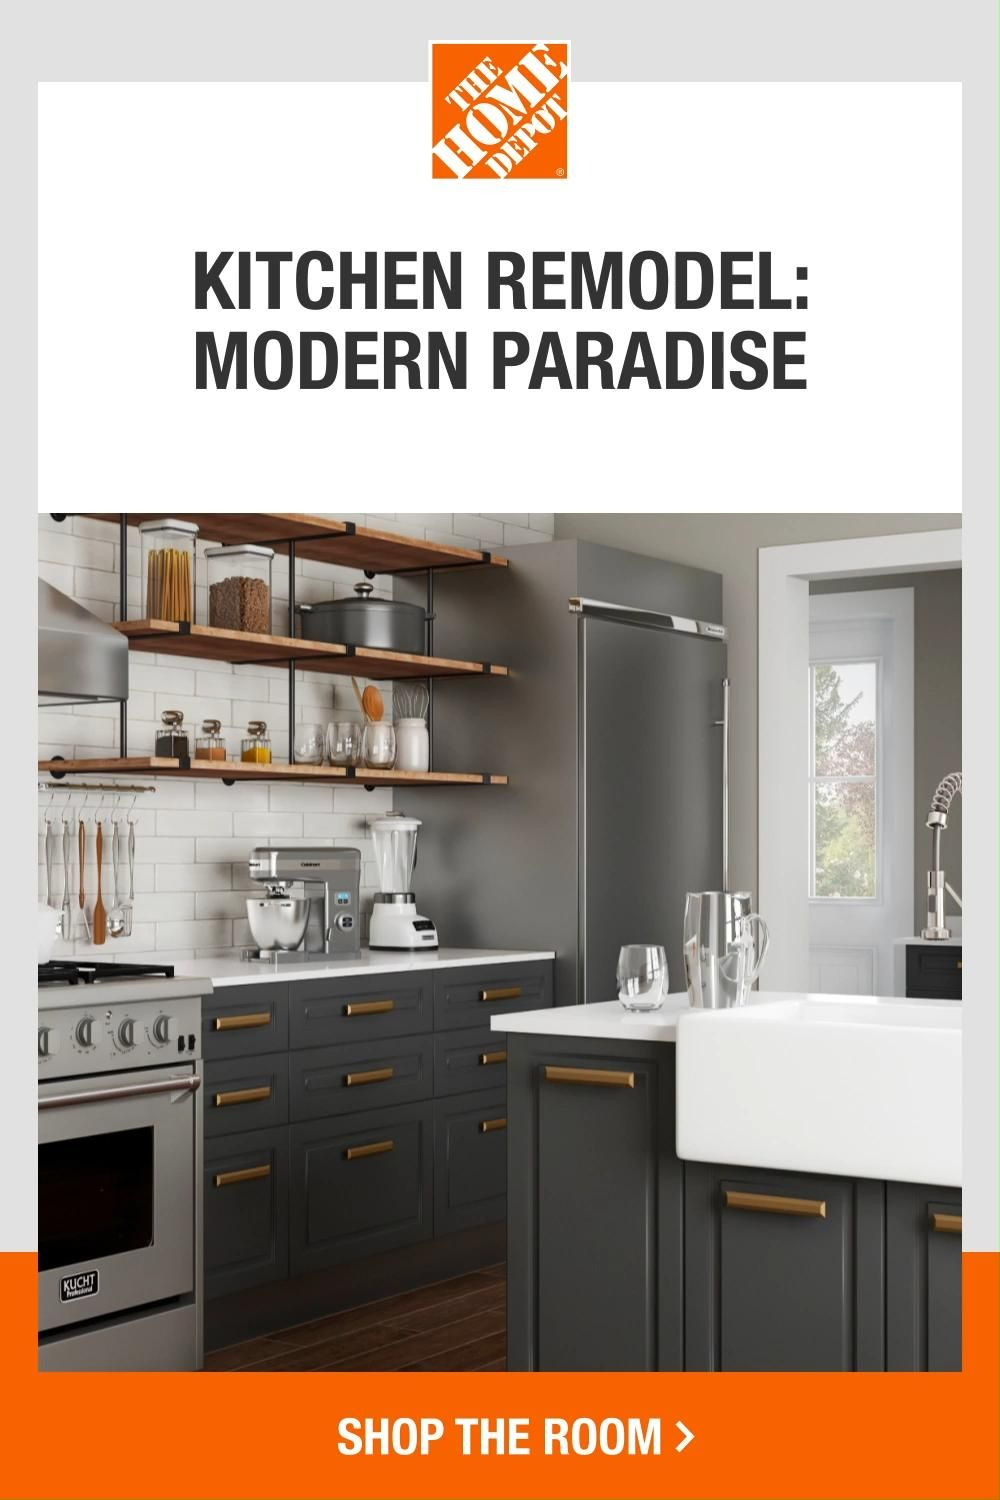 Transform your kitchen with popular trends and stylish ideas from The Home Depot